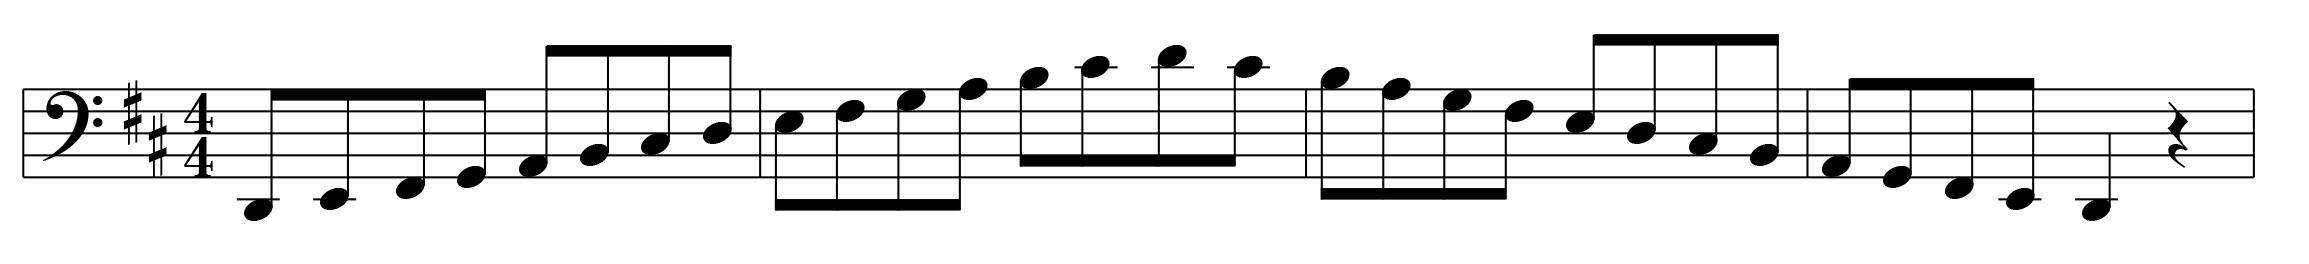 D Major Scale Left Hand